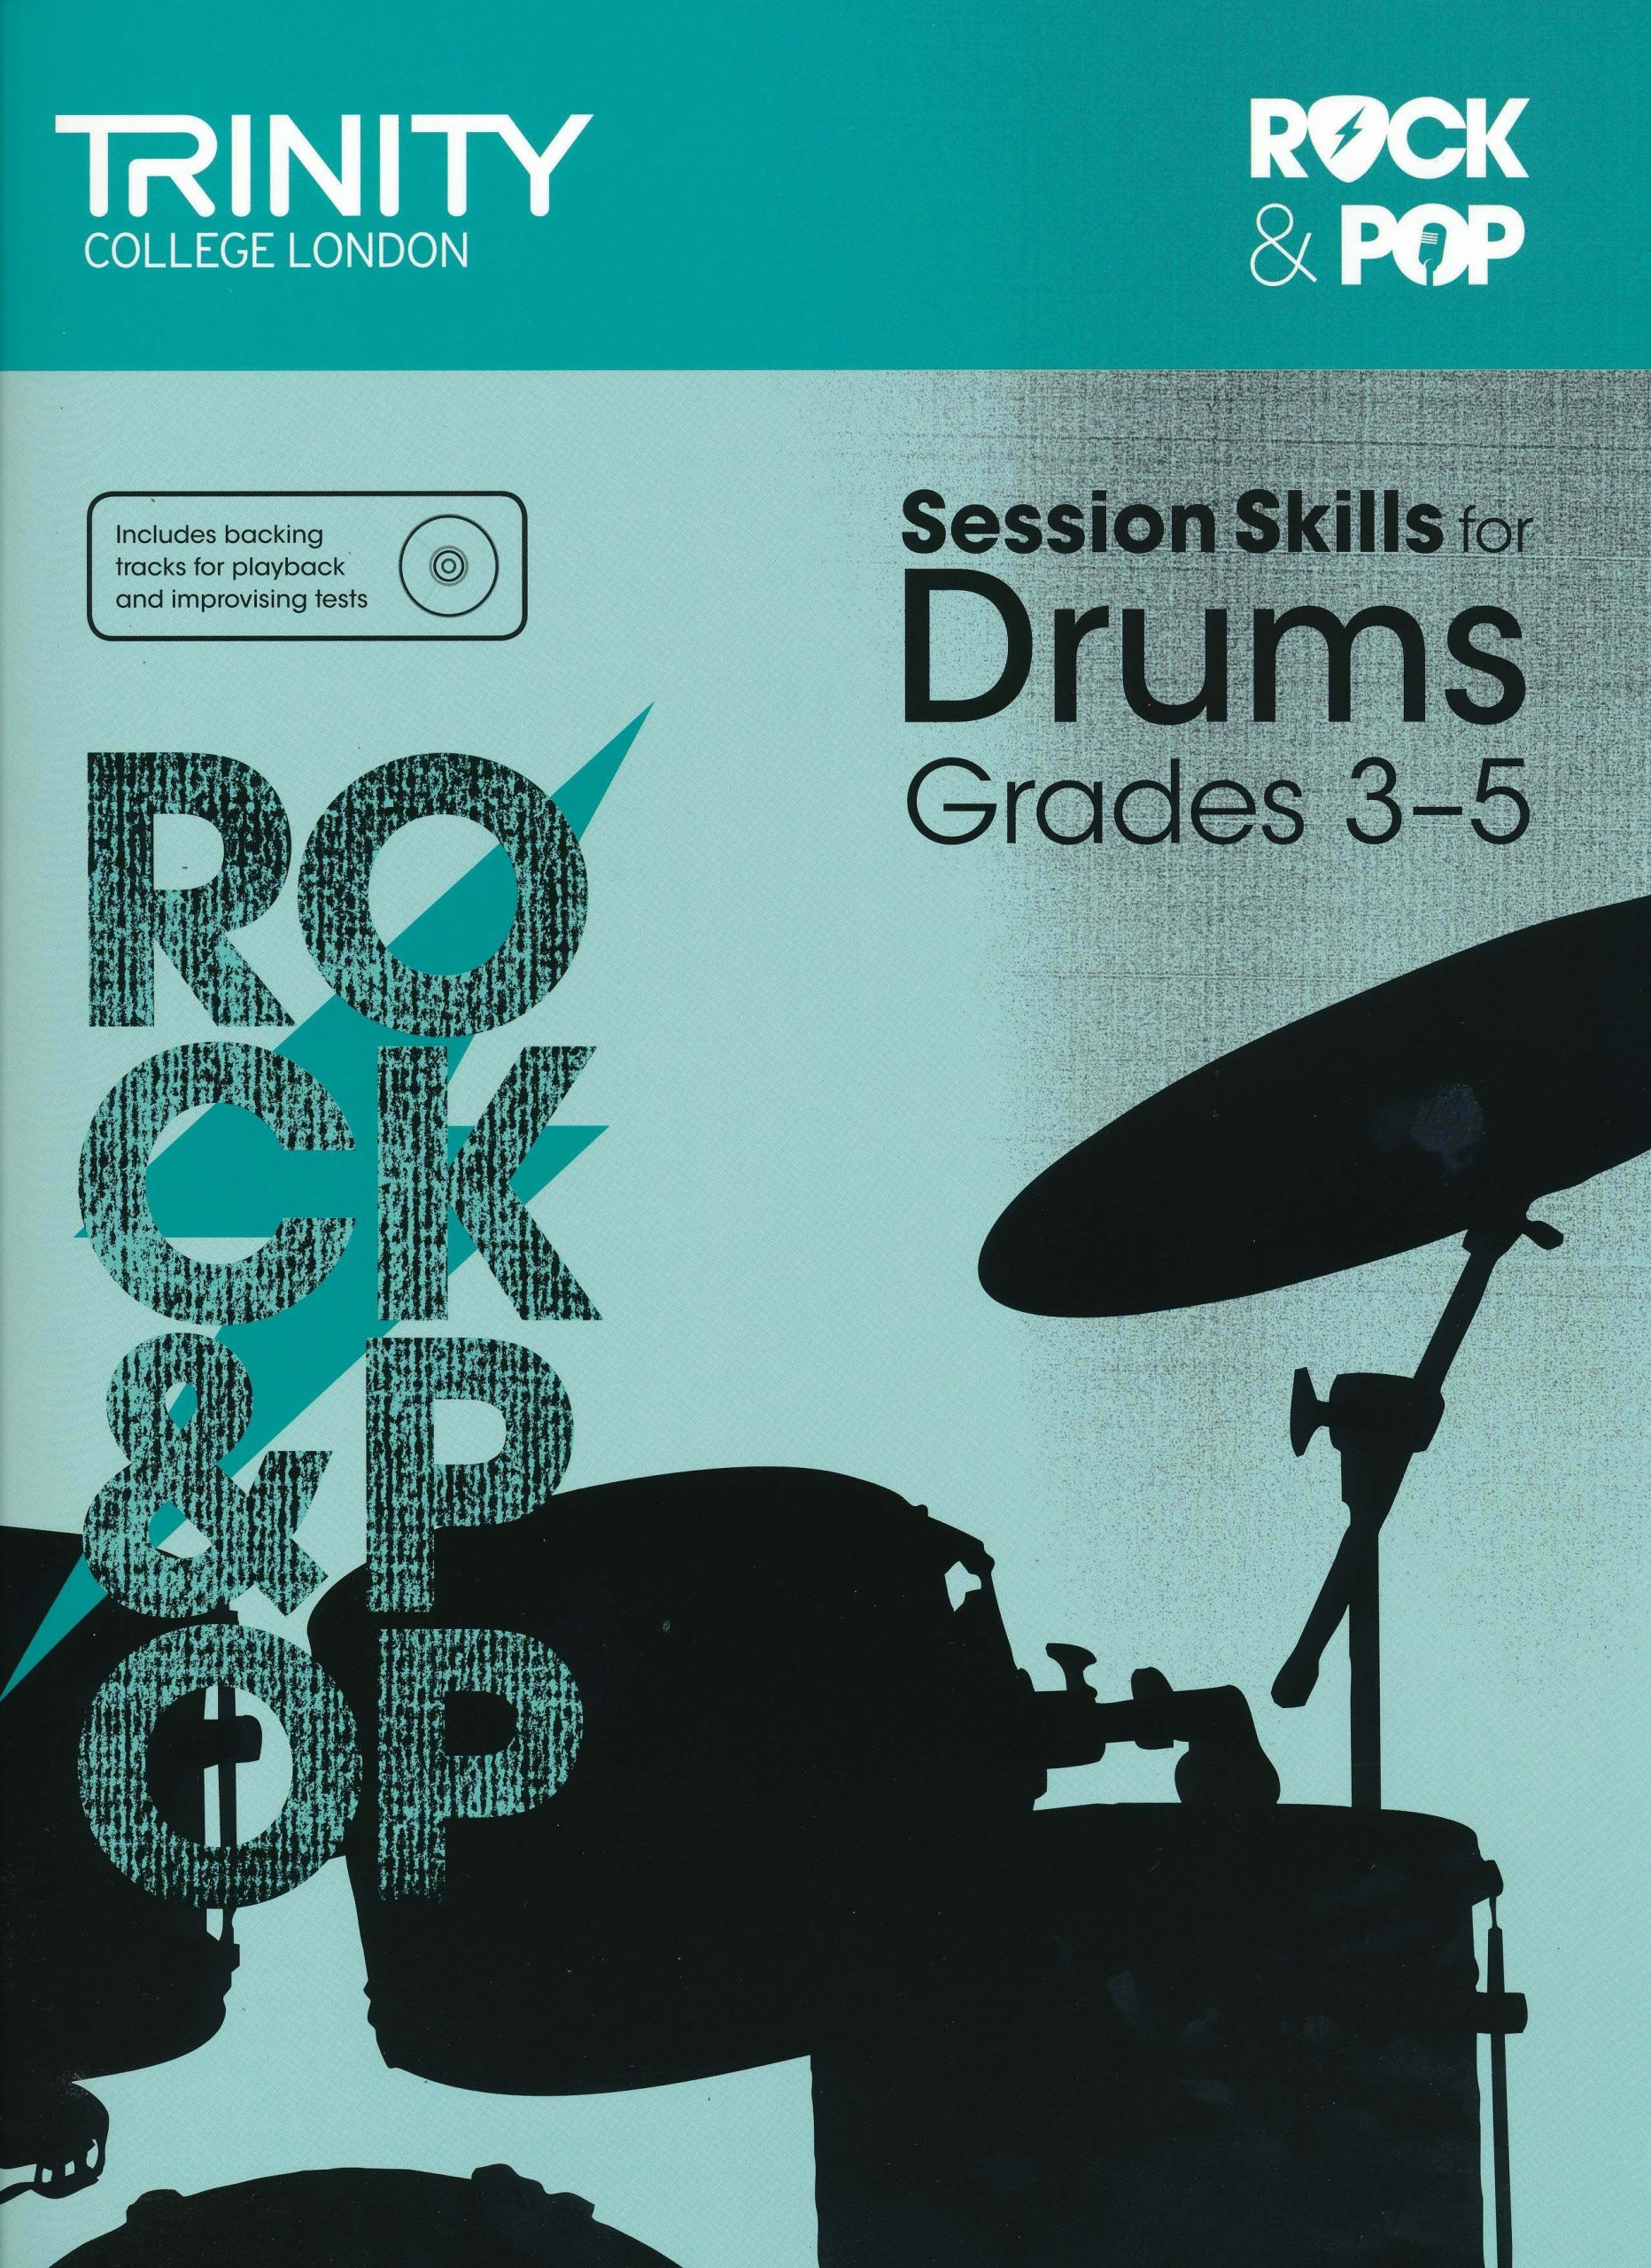 Rock and Pop Session Skills for Drums: Grades 3-5